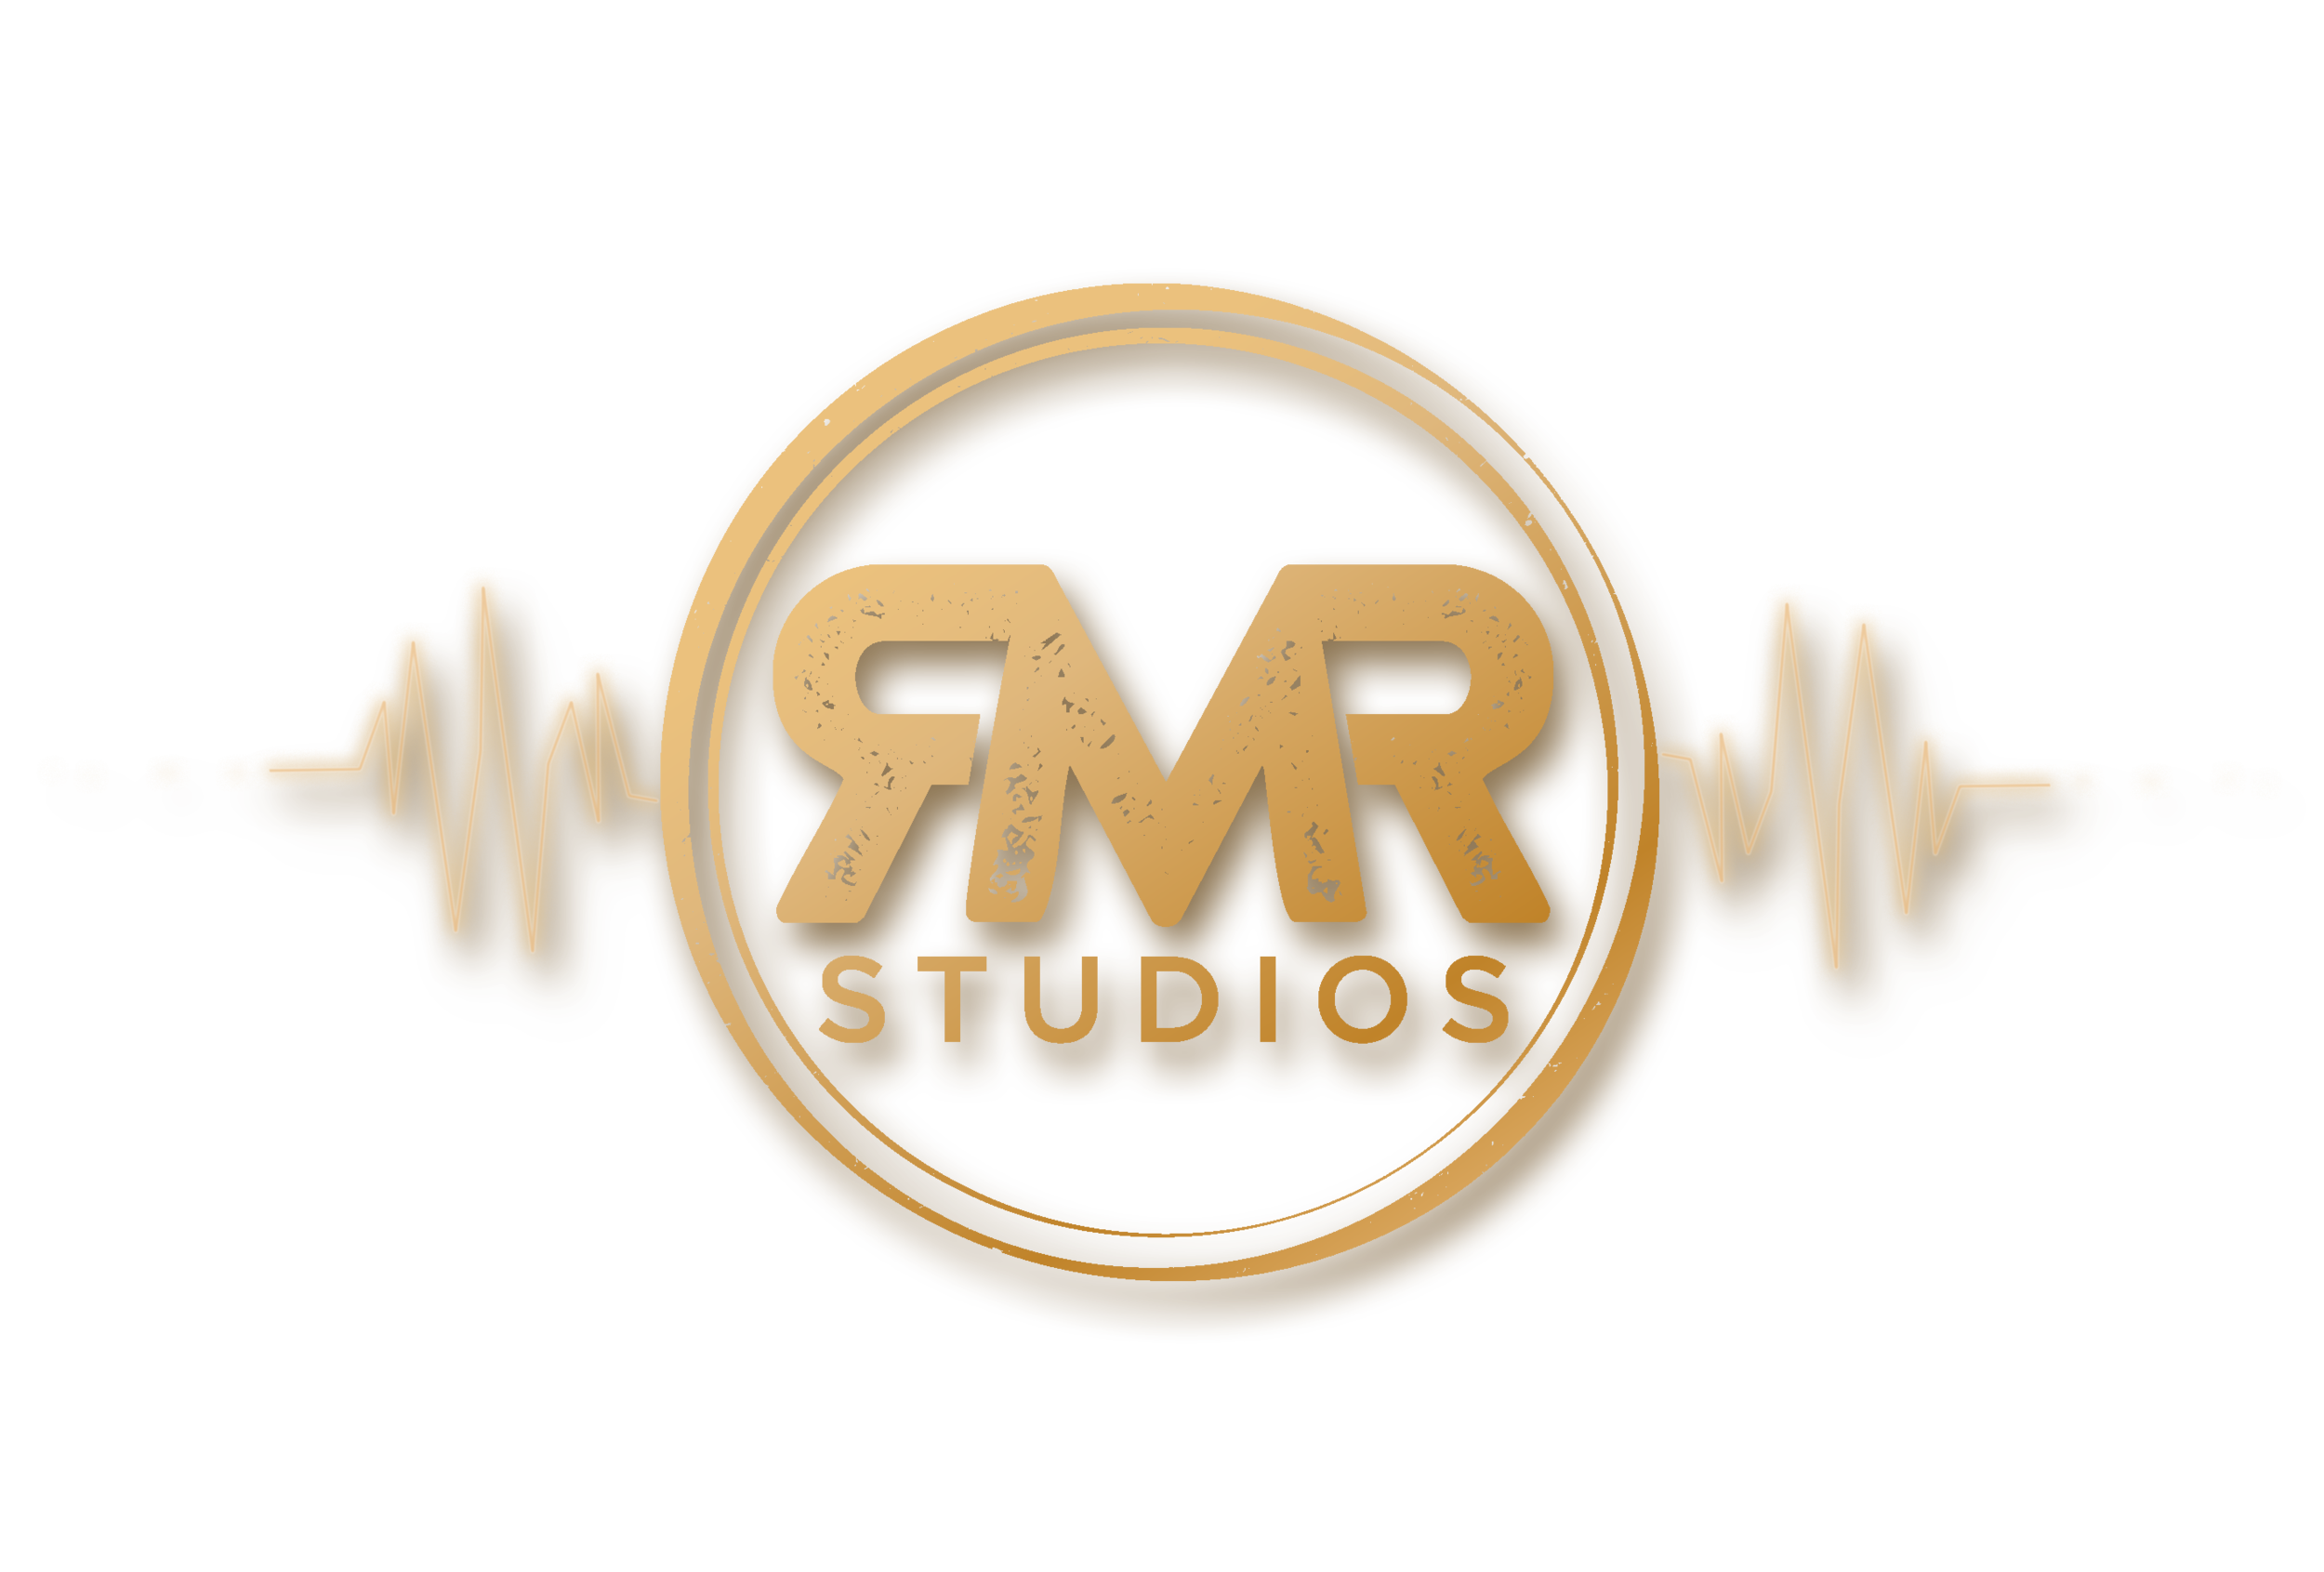 RMR_Studios Logo (see through).png